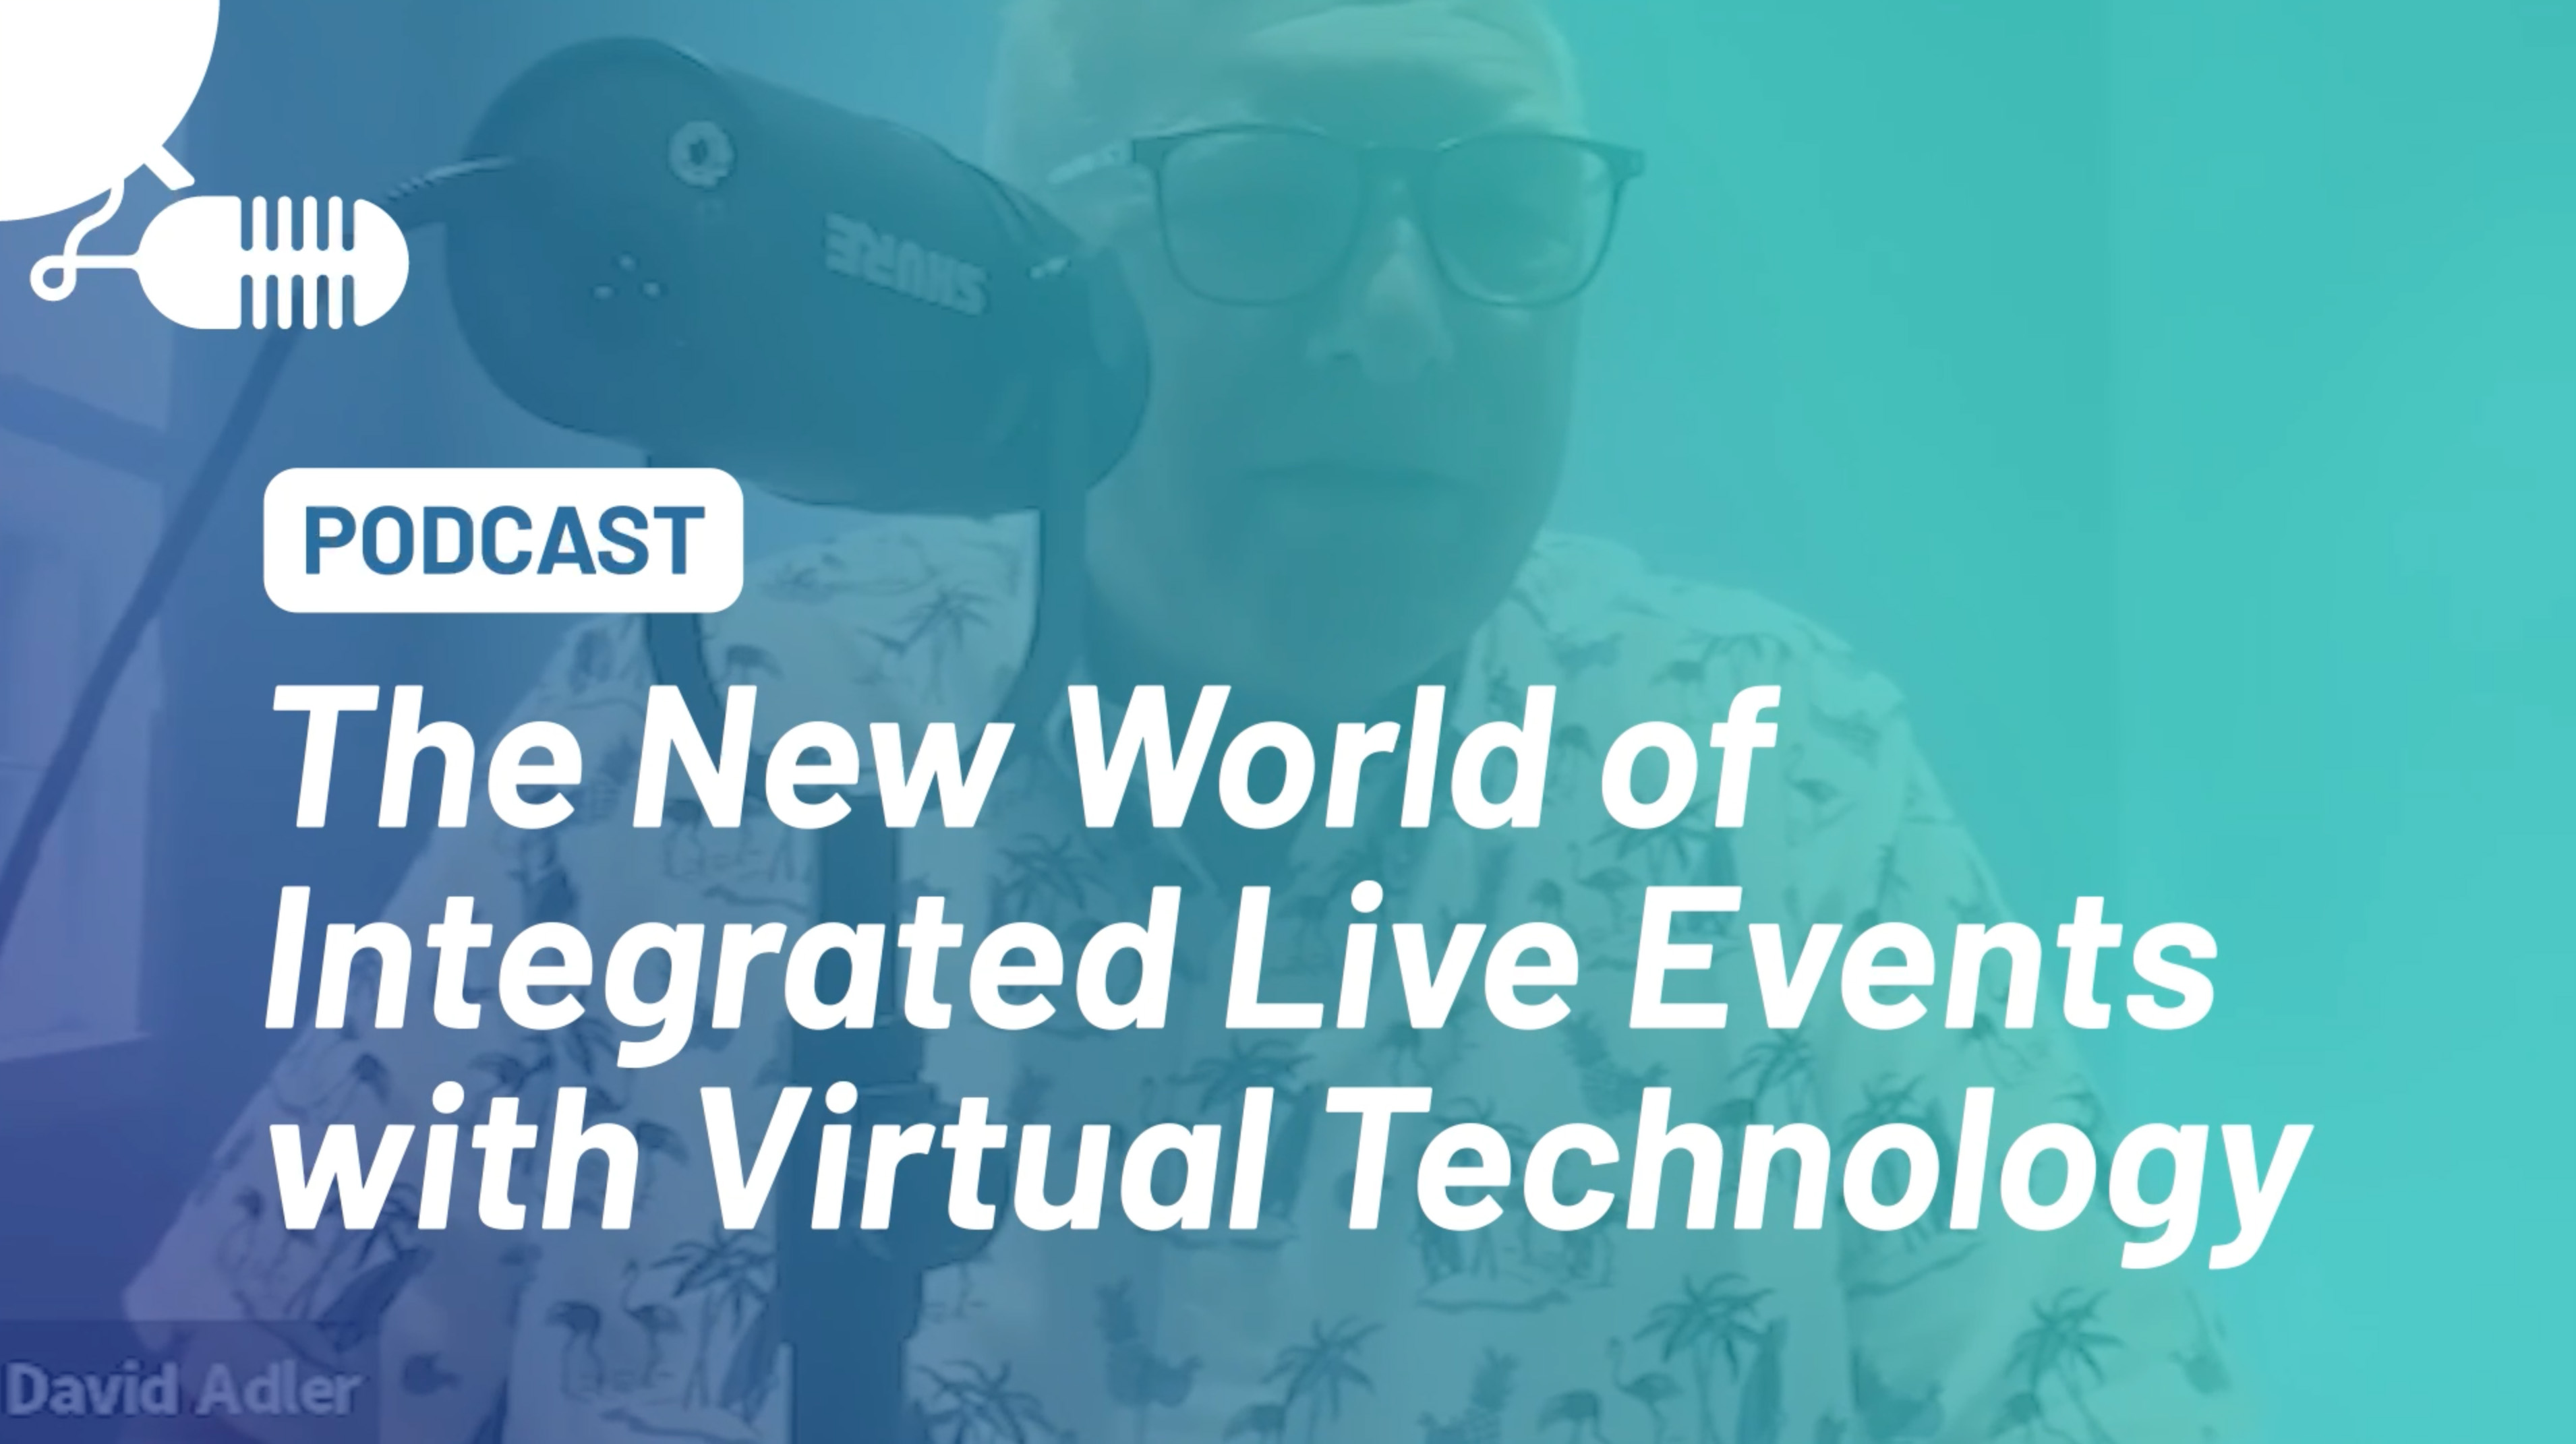 new world of integrated live events with virtual technology